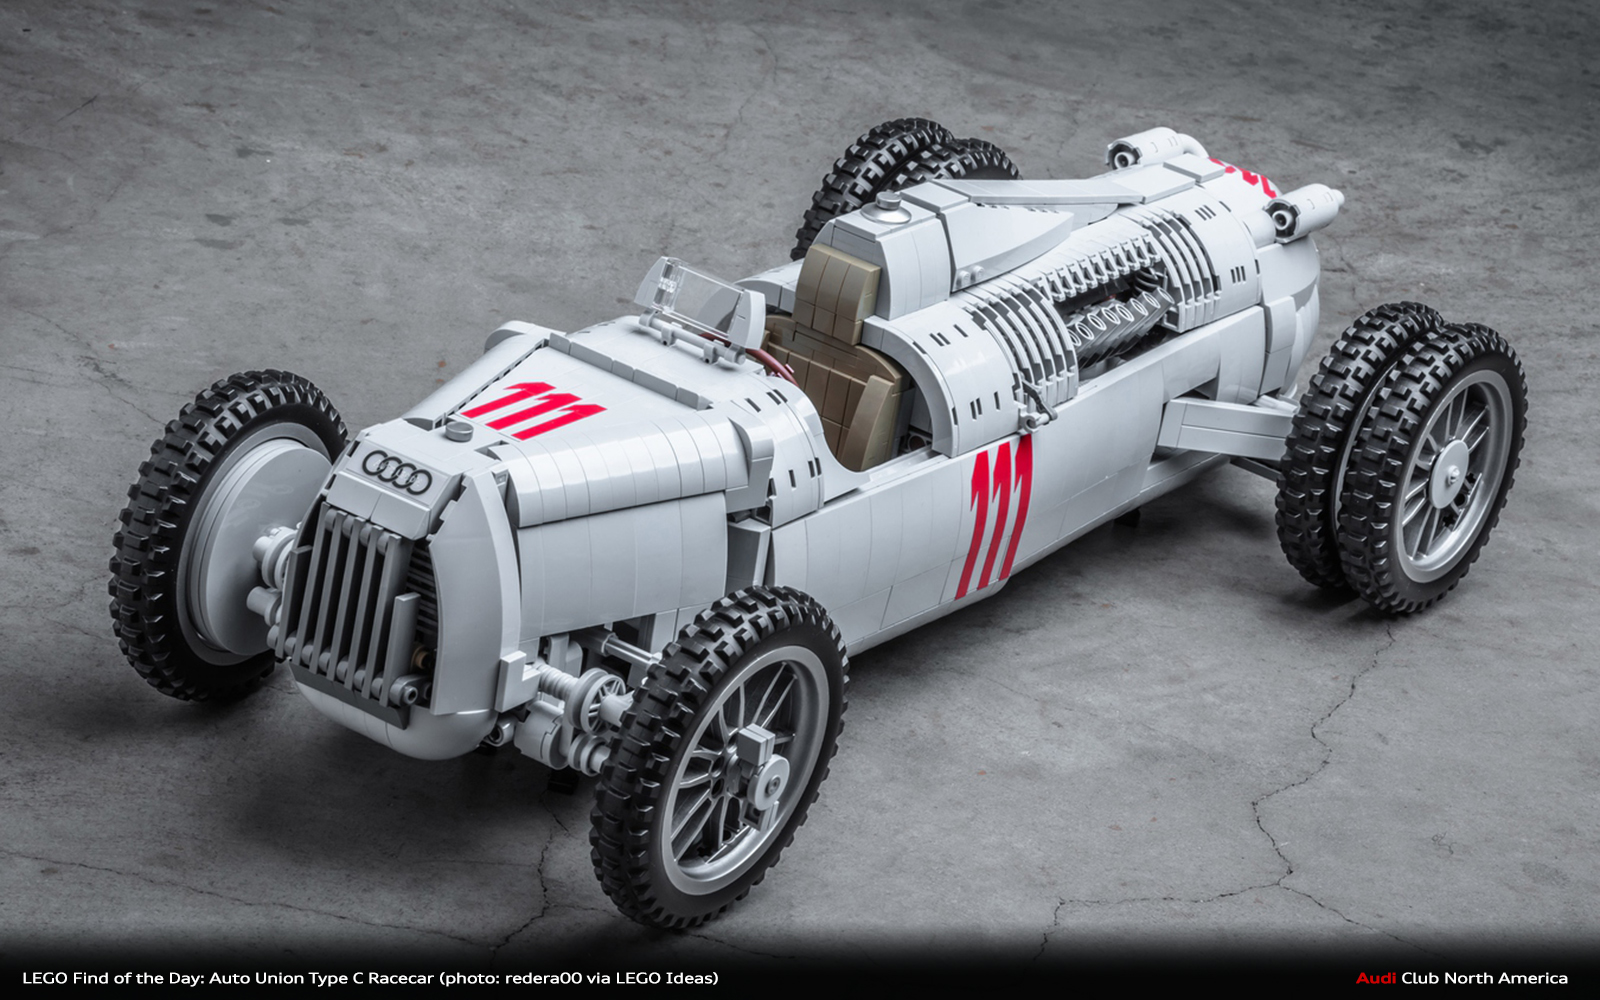 LEGO Find of the Day: Auto Union Type C Racecar